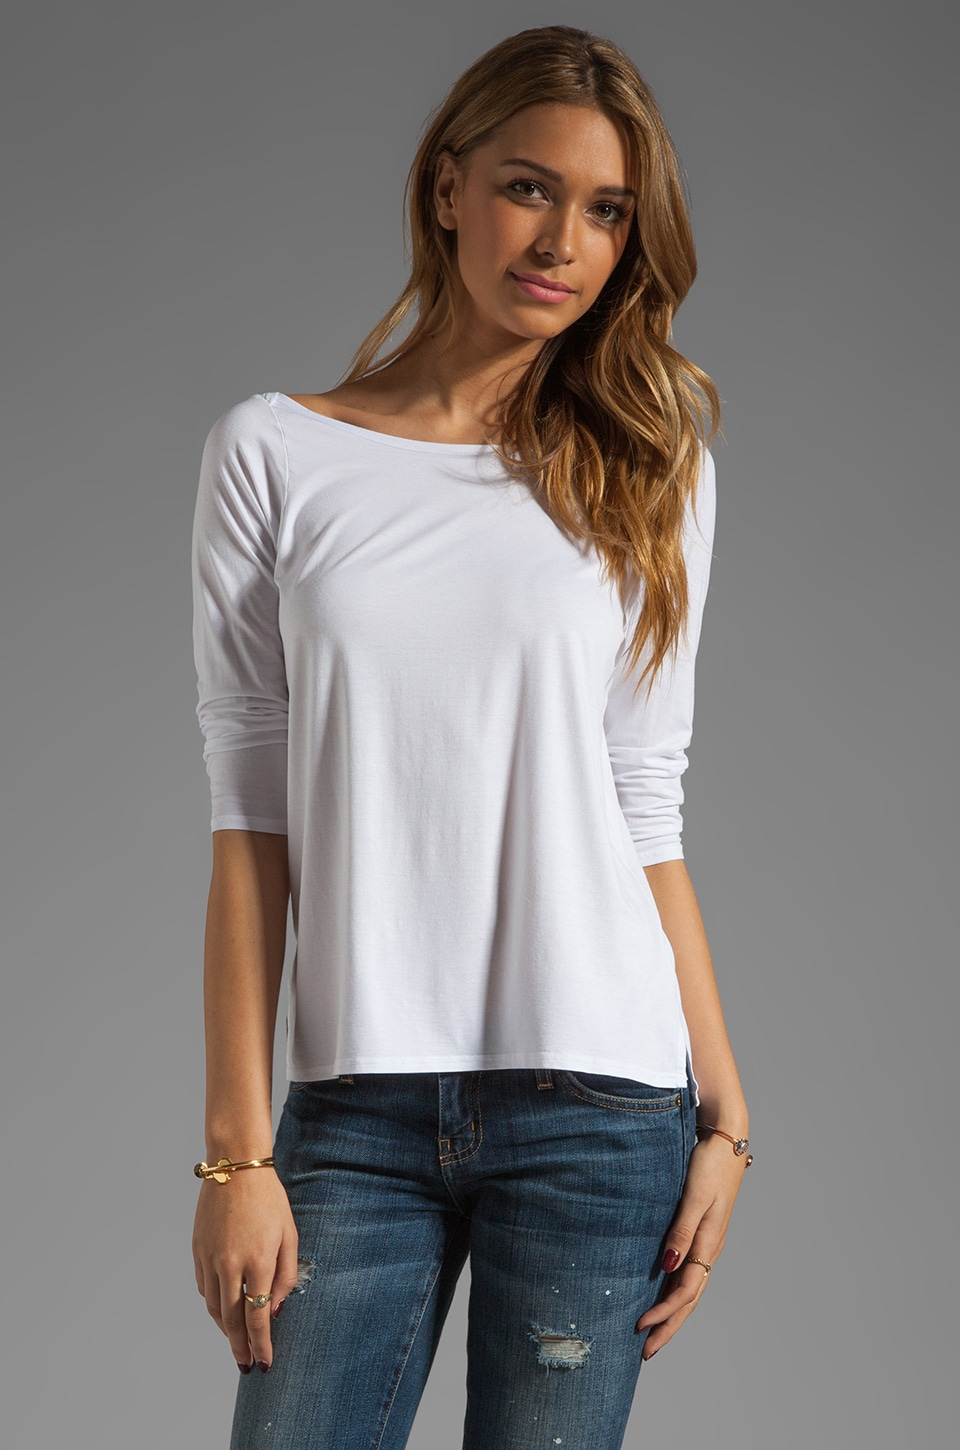 Feel the Piece Frenchie Boat Neck Top in White